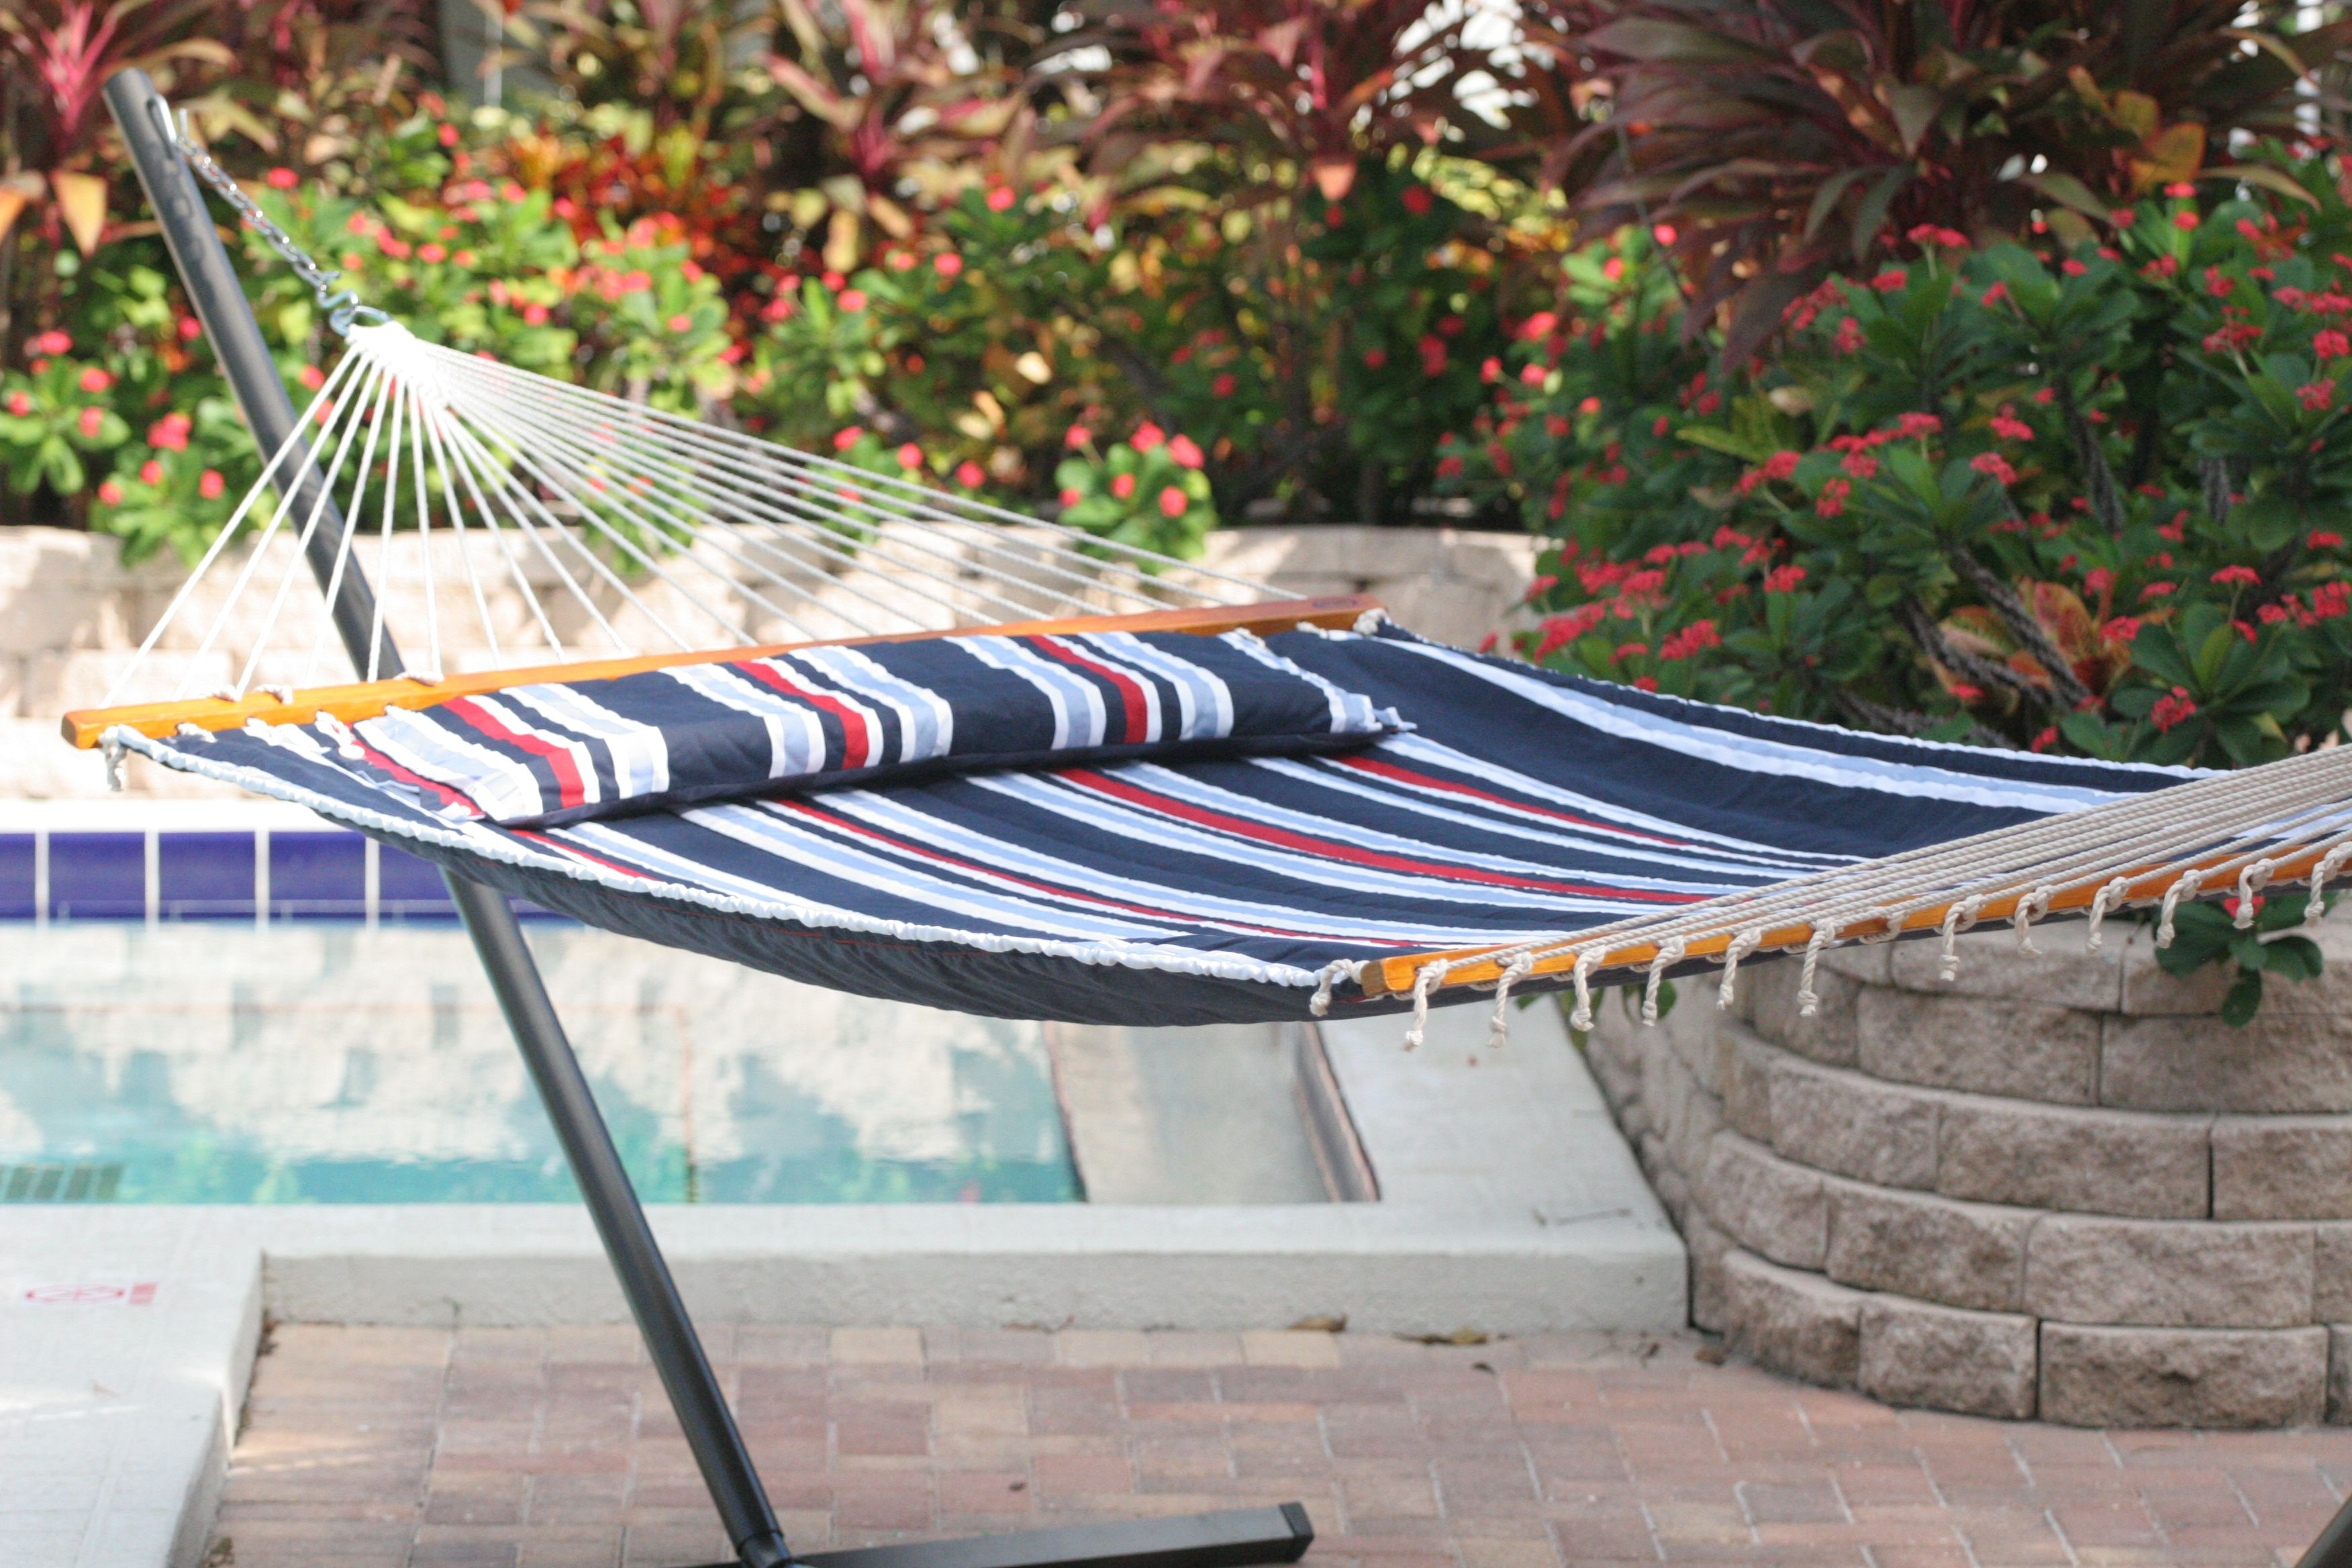 Lounge stylishly in outdoor comfort with the nylon hammock in a bag